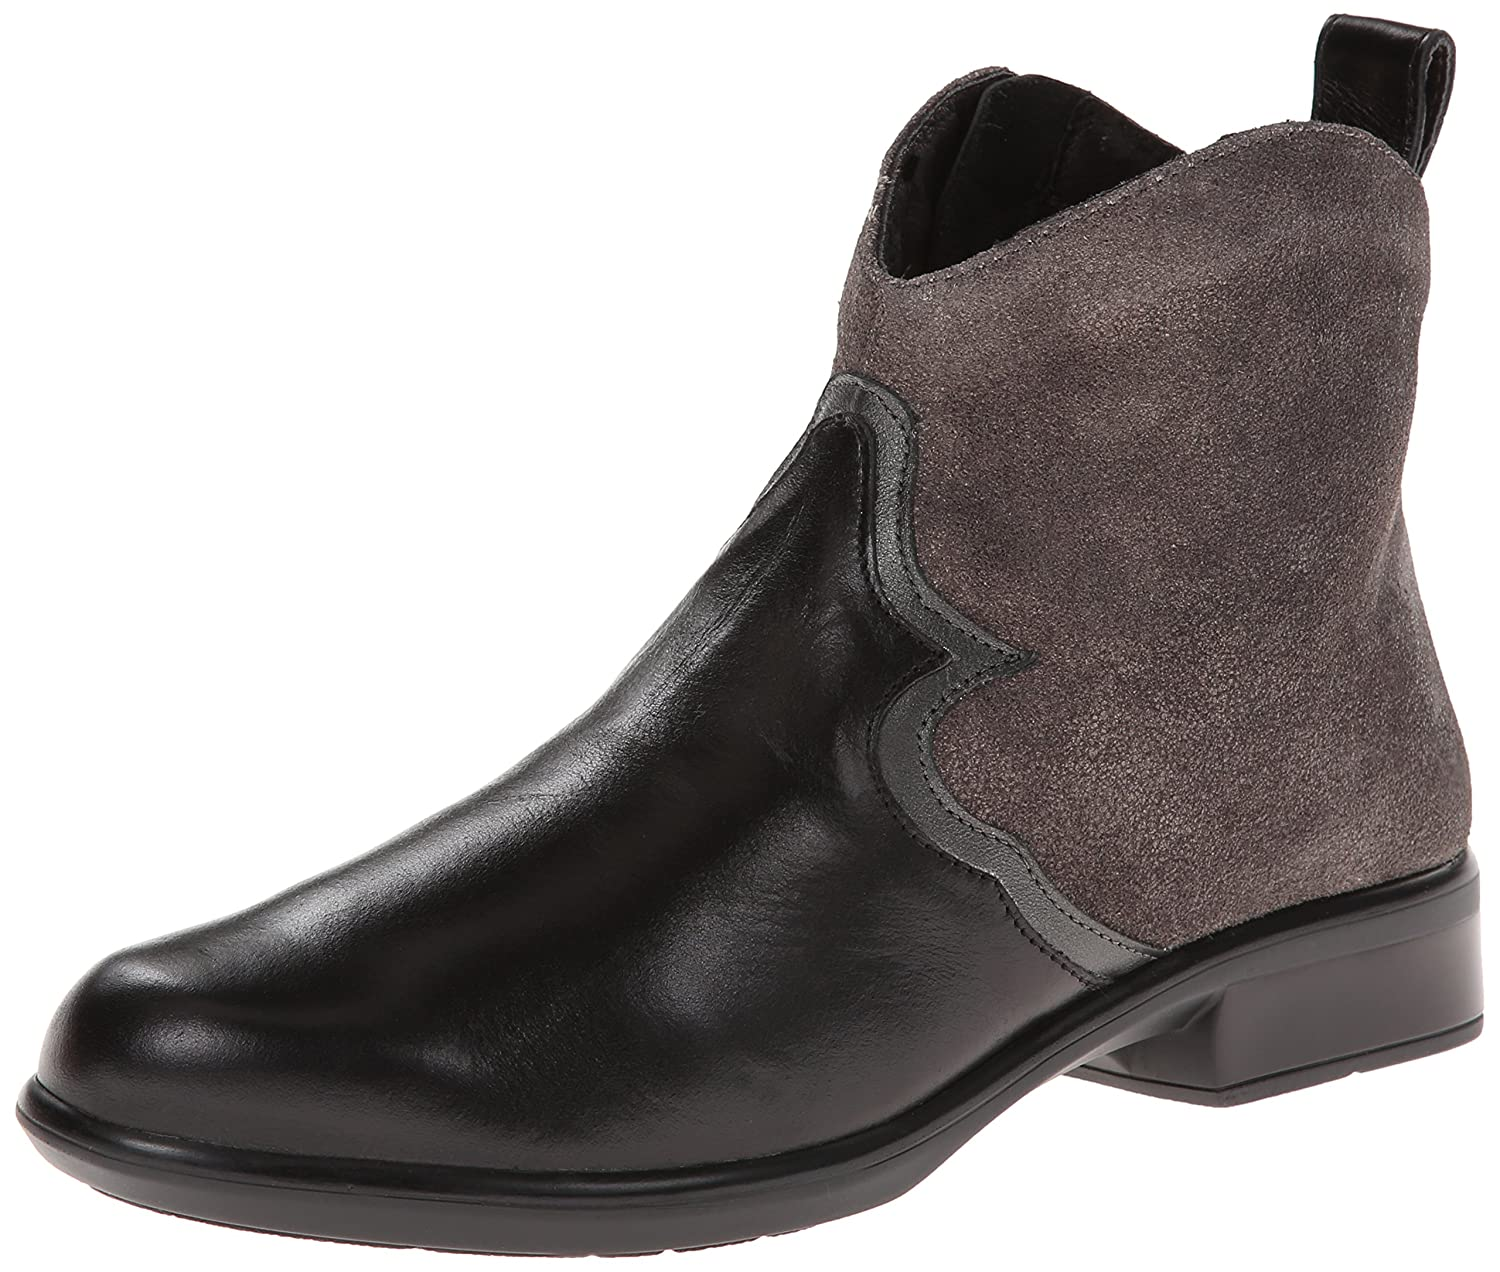 NAOT Women's Sirocco Boot B00IG9SJ3C 38 EU/6.5-7 M US|Black Leather/Gray Shimmer Leather